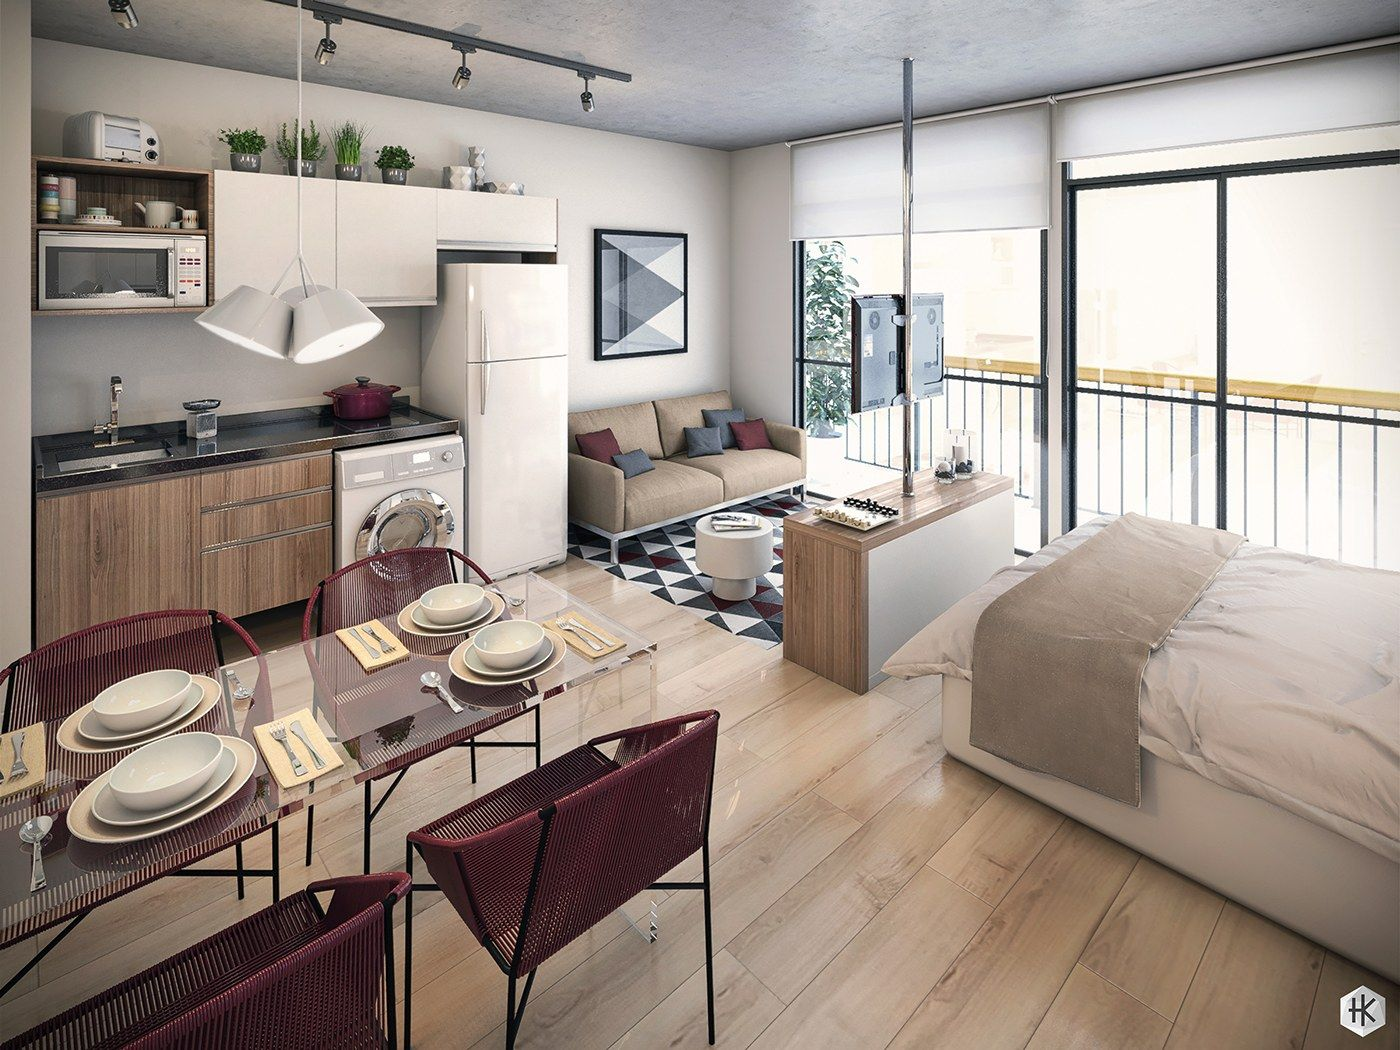 5 Small Studio Apartments With Beautiful Design ...